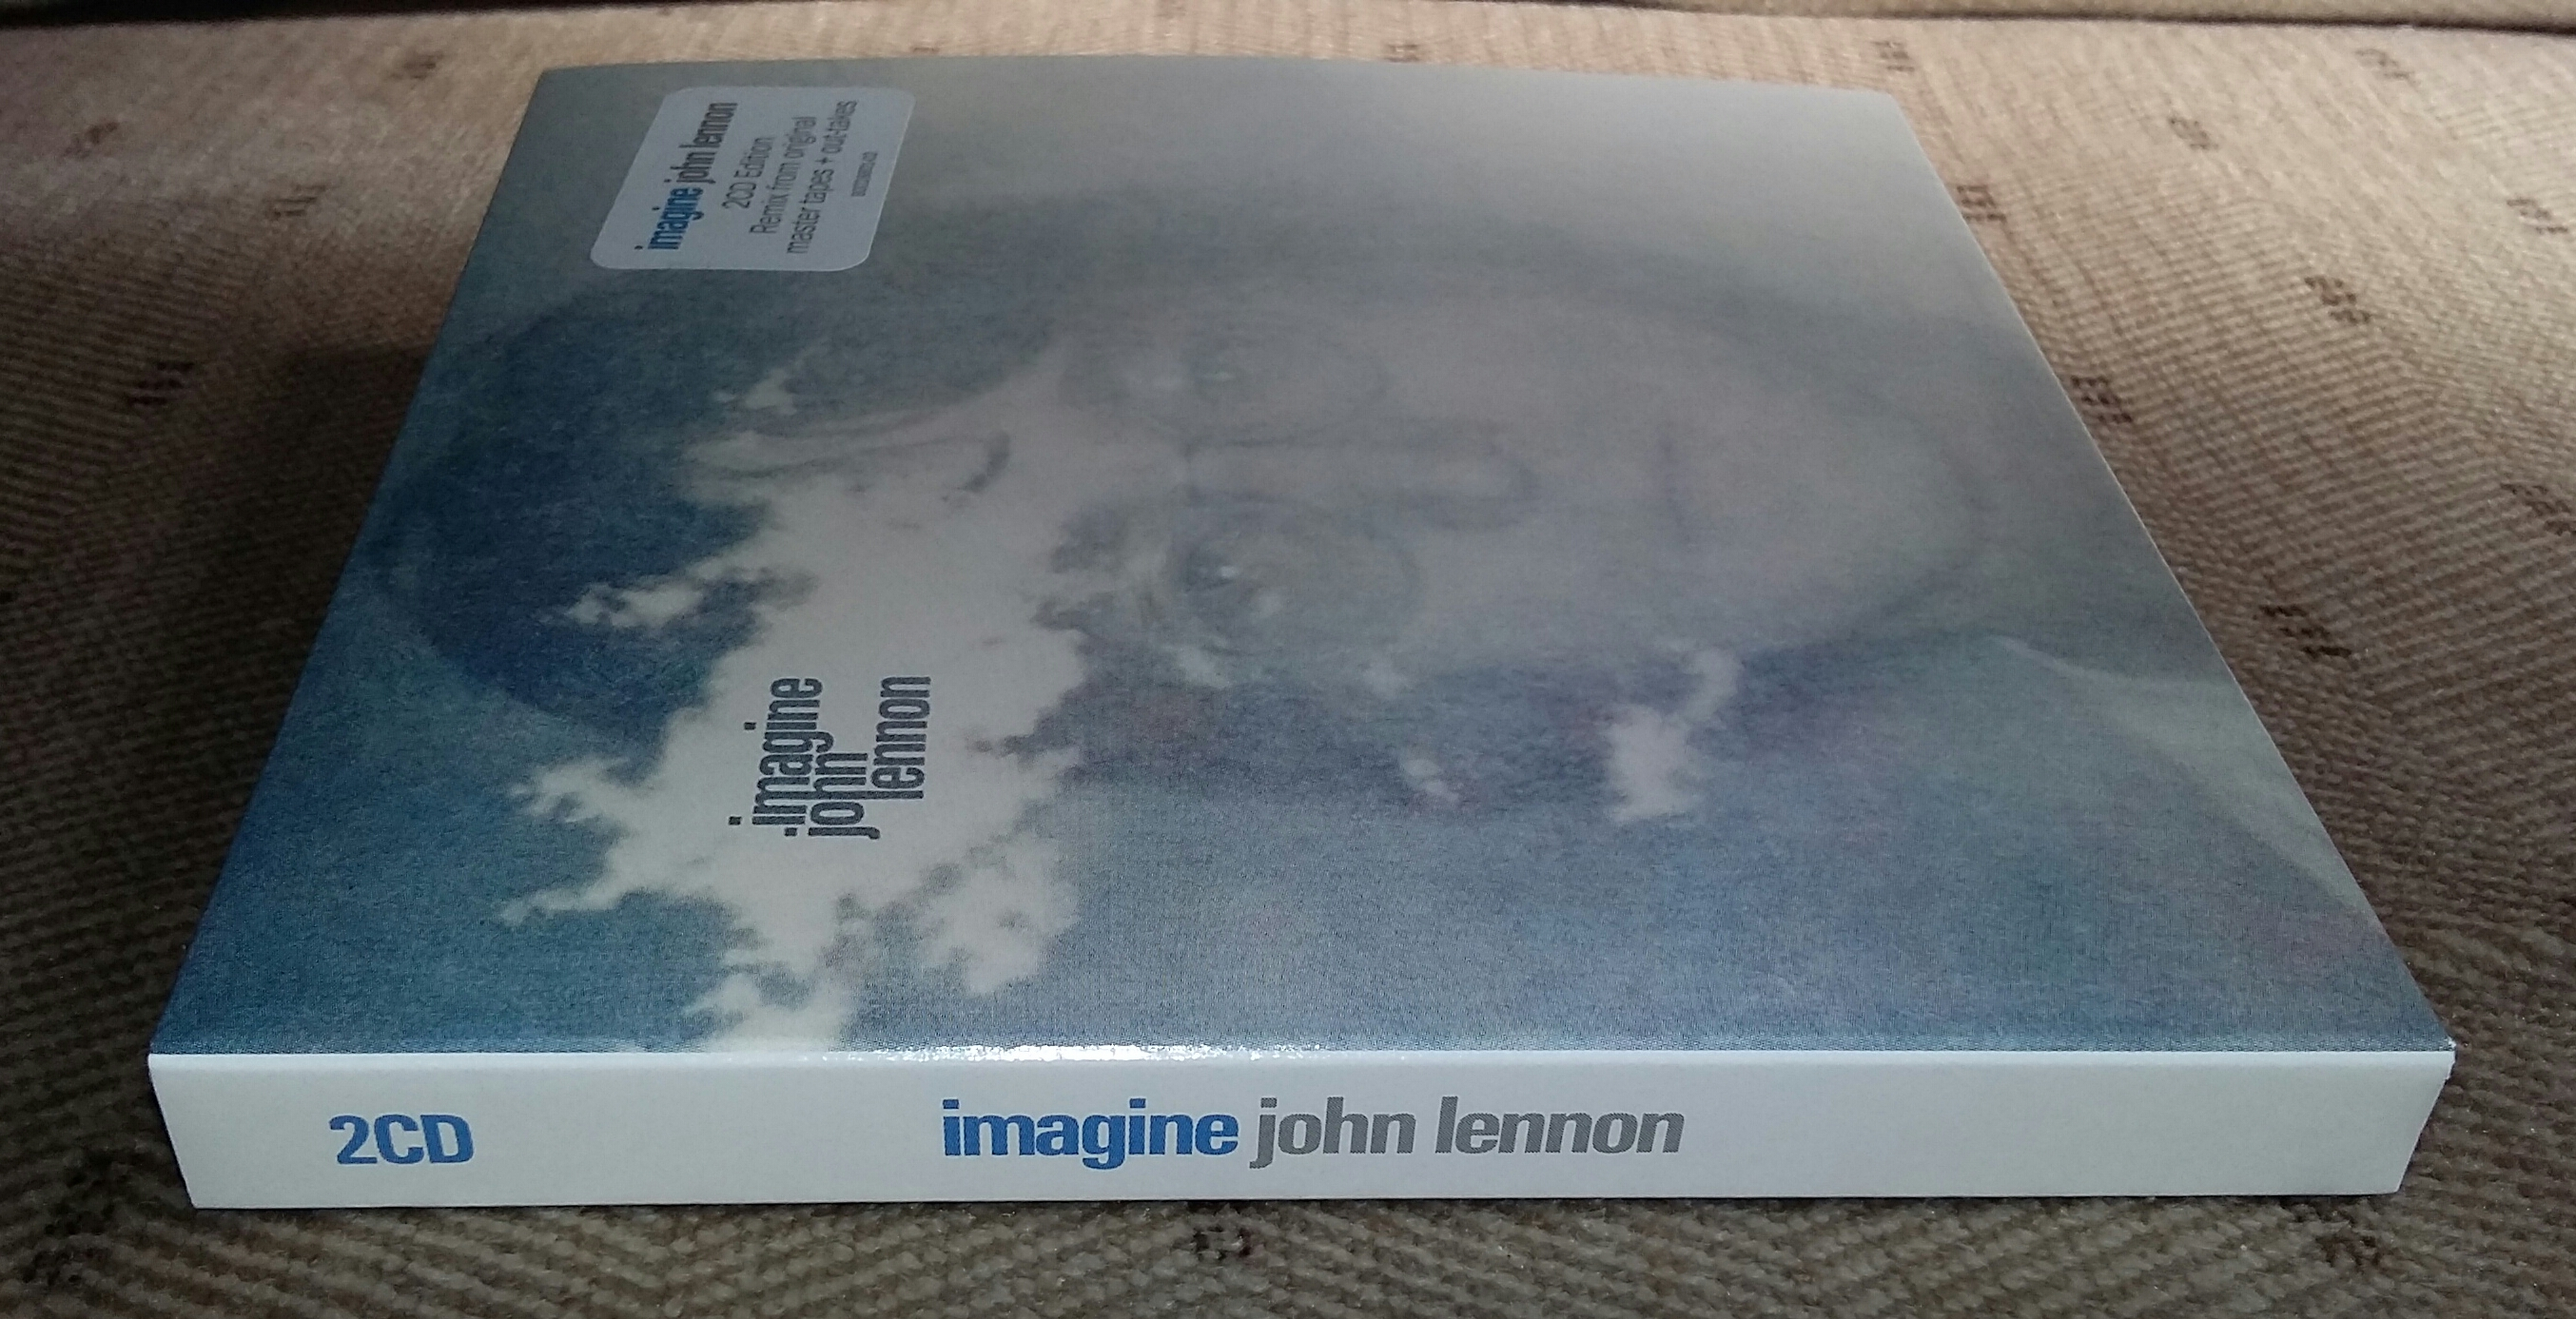 John Lennon Imagine New Deluxe 2 Cd Set A Detailed Review Records Cds And Music